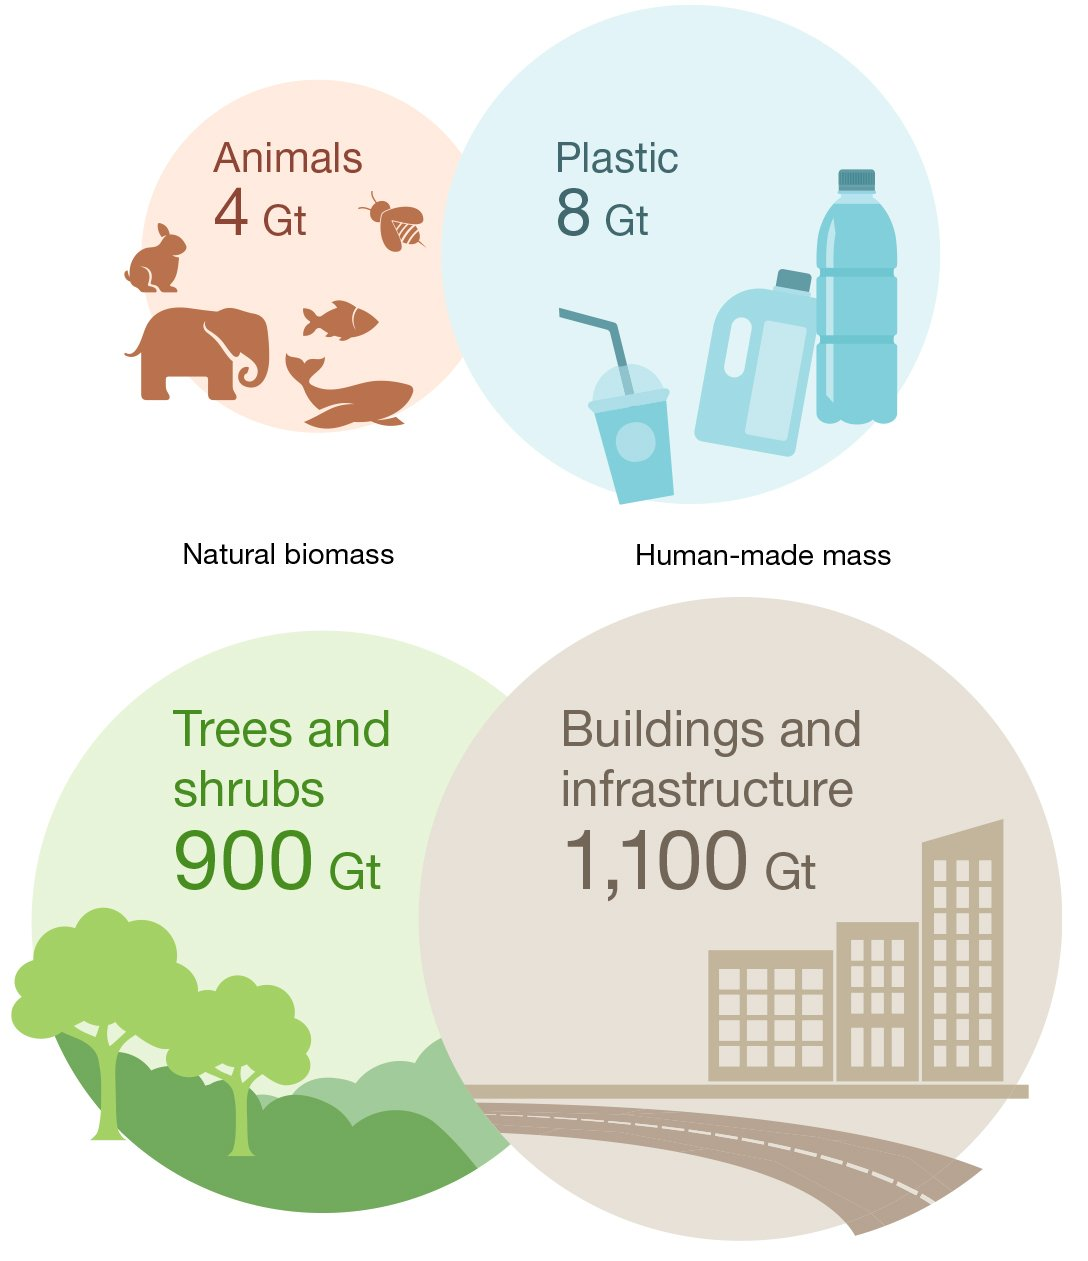 biomass of plants and animals compared with plastic and construction mass